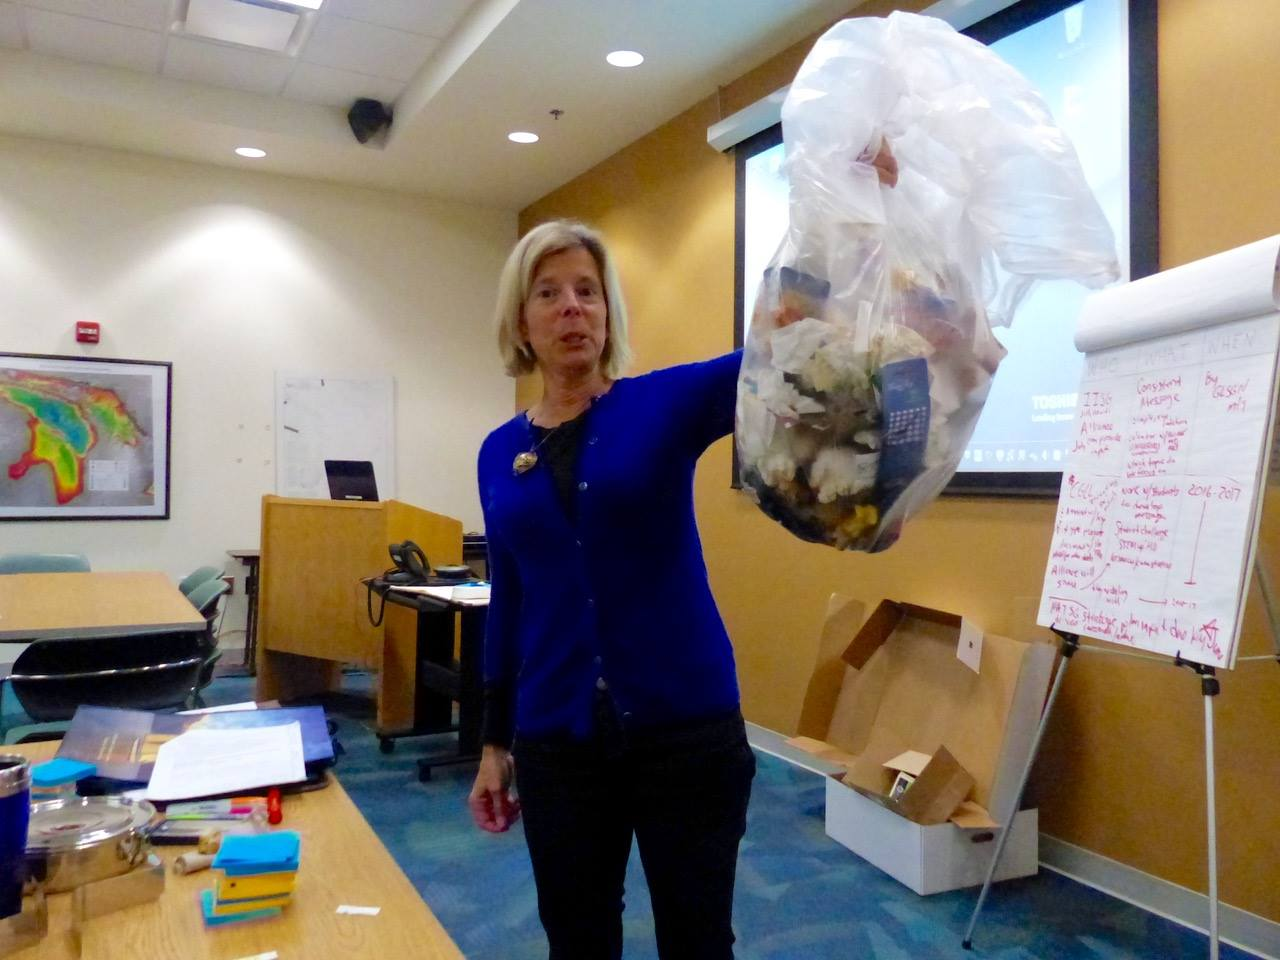 Marti Martz showing how much trash was saved during Microplastics workshop